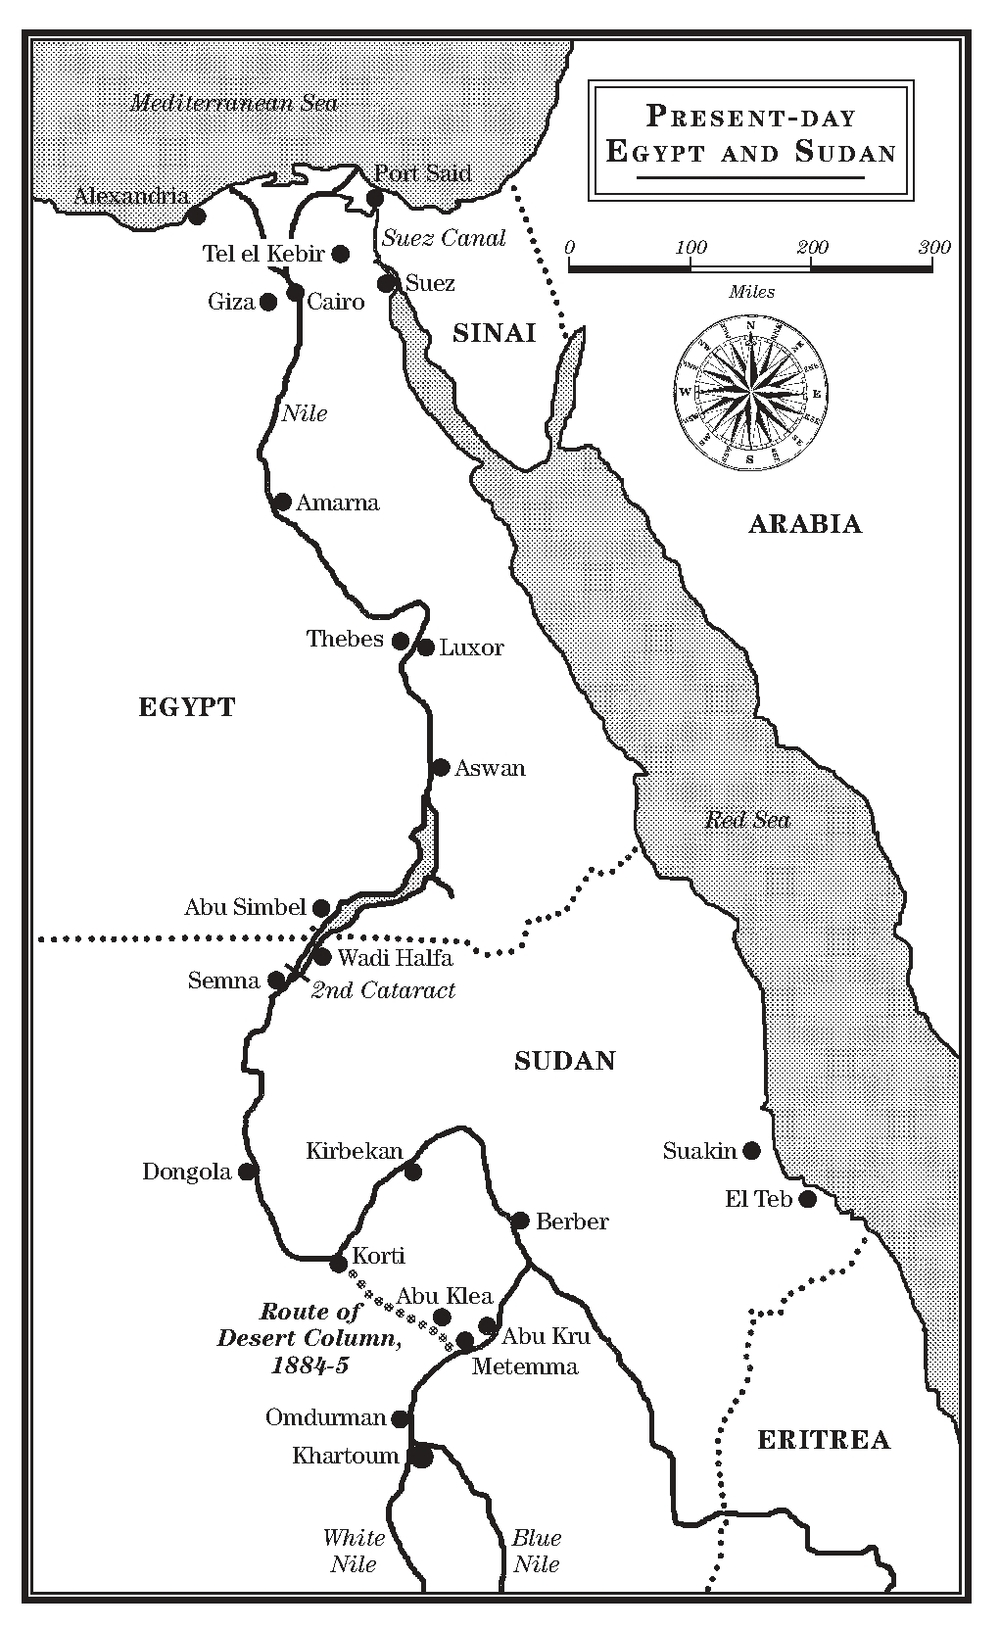 In this map you can see the short cut taken by the 'Desert Column' from Korti to Metemma, where they were meant to meet up both with the 'River Column' and the armoured steamers that had come down from Khartoum to take them upriver. In the event, the River Column never made it in time, and the Desert Column was stalled by the savage battle at Abu Klea and Abu Kru; the small force that was able to embark on the steamers for Khartoum arrived a day too late.